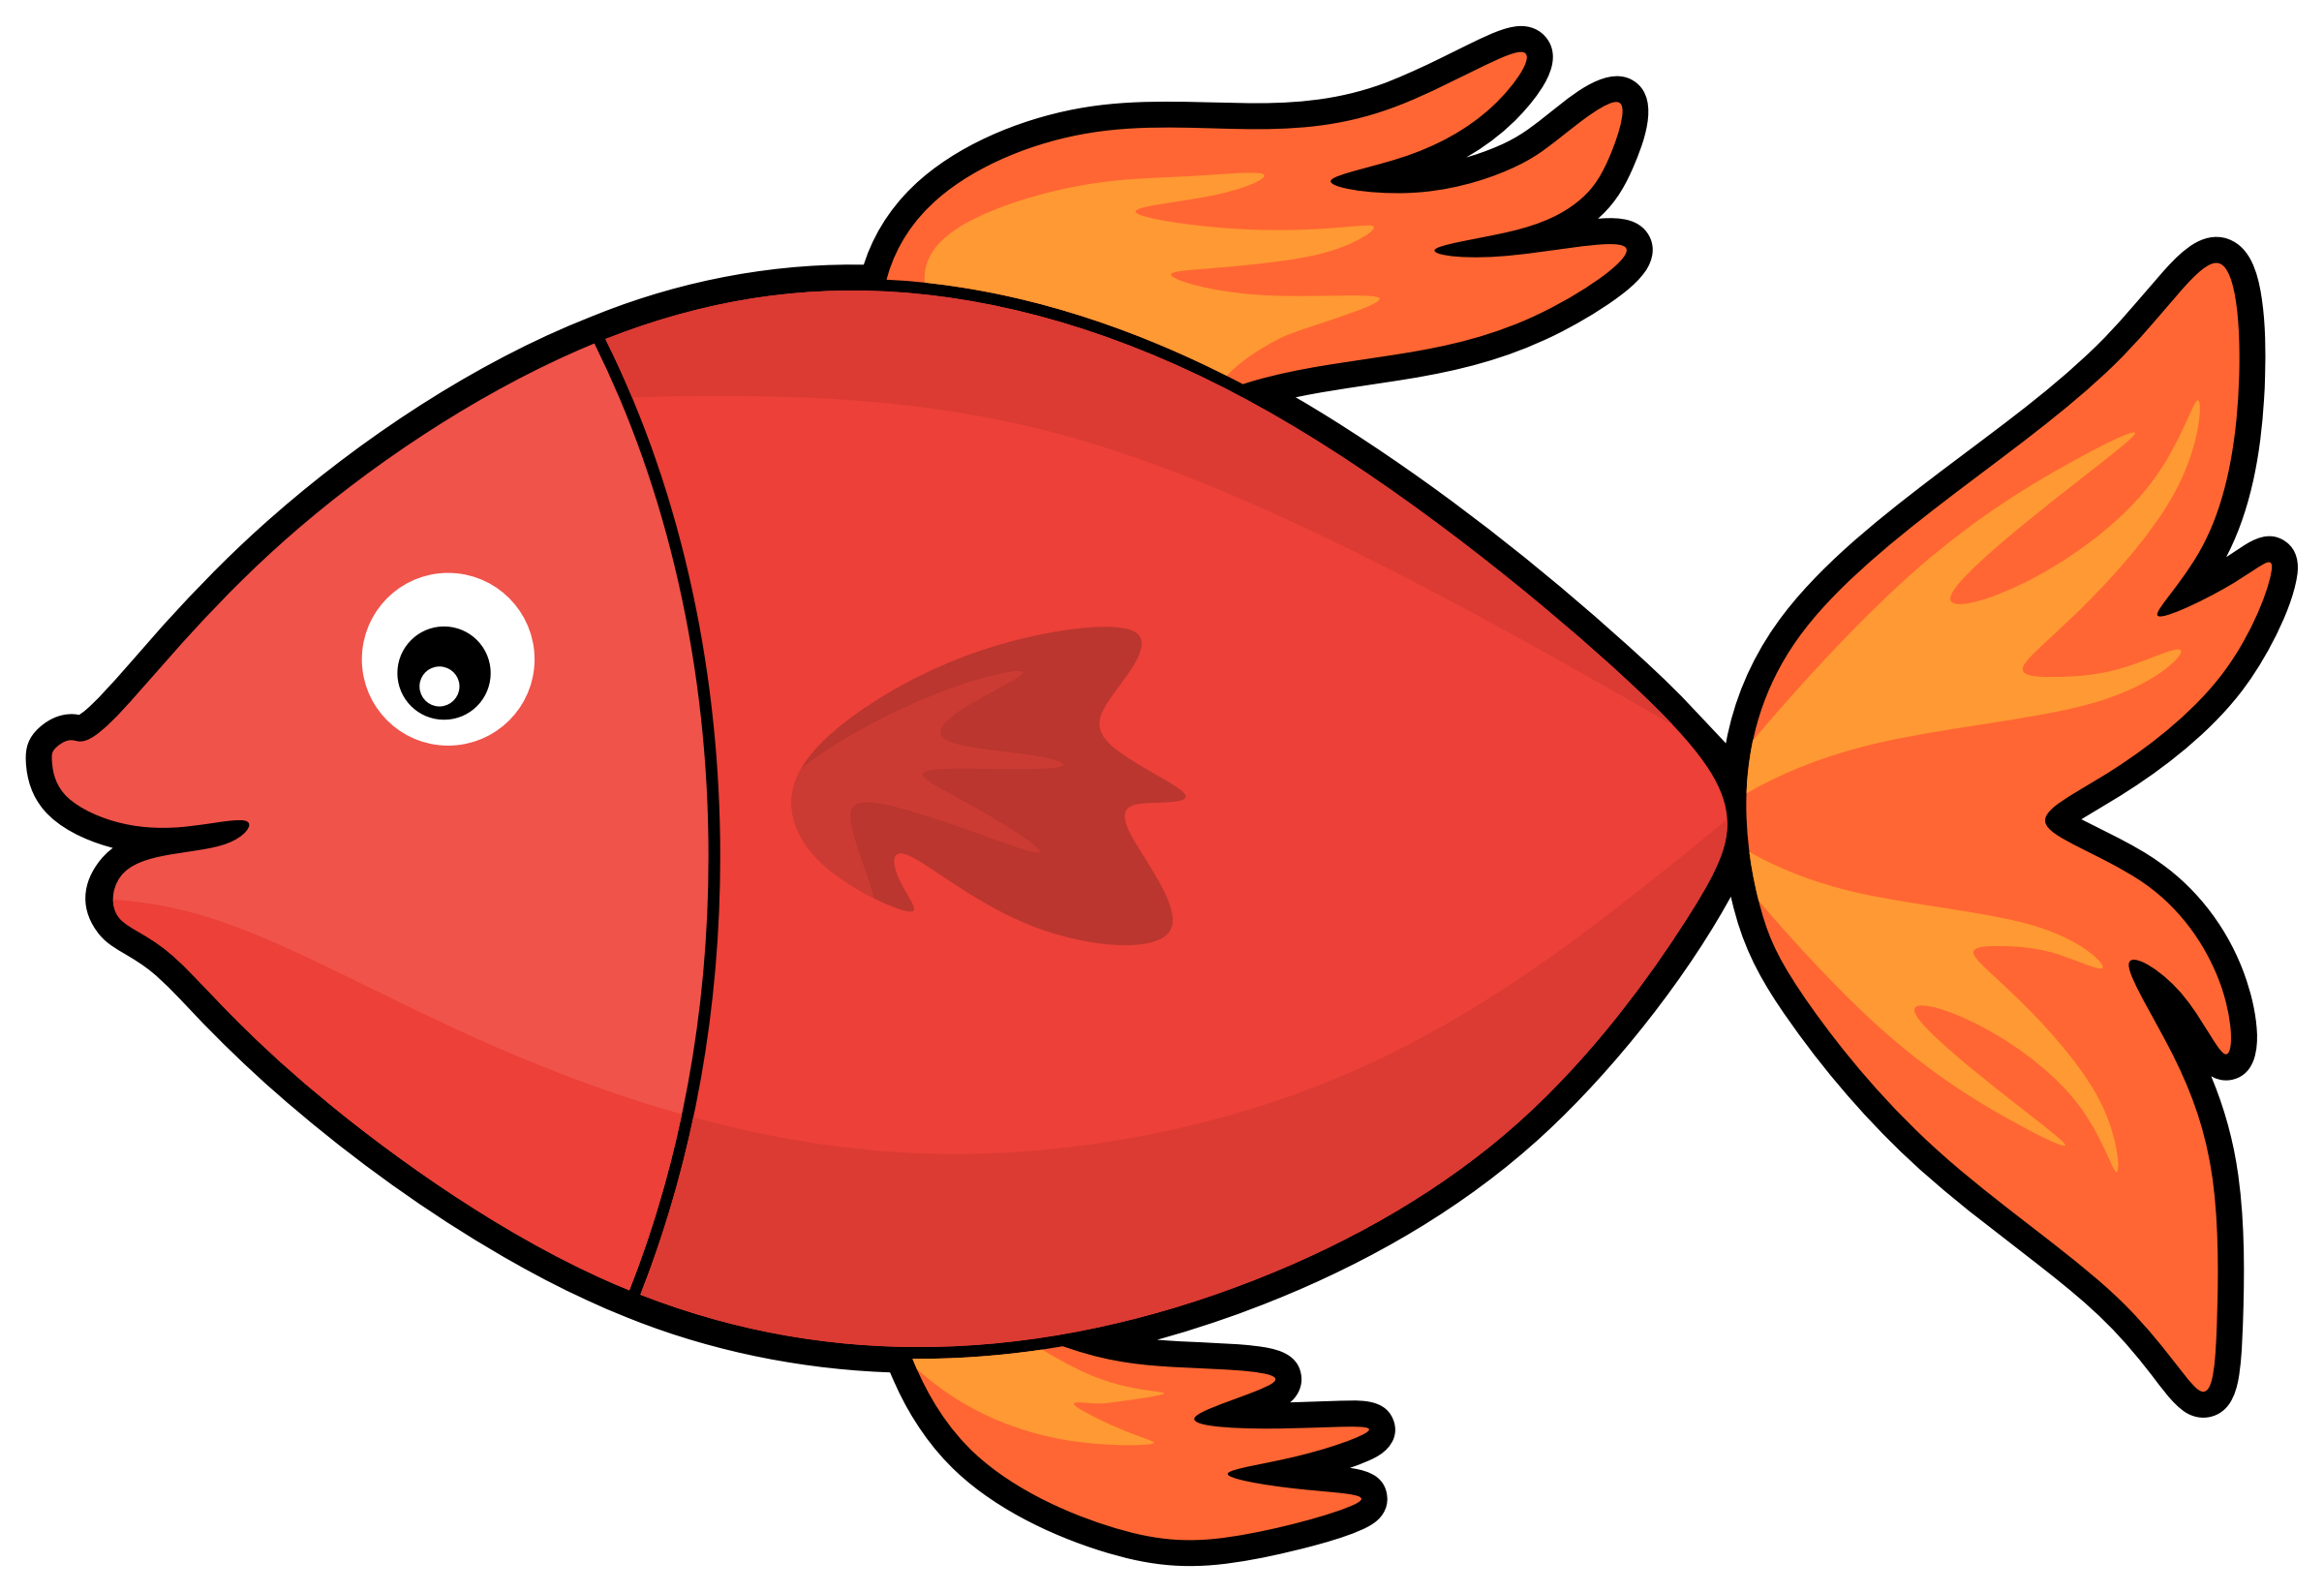 Fish clipart. Butterfly at getdrawings com